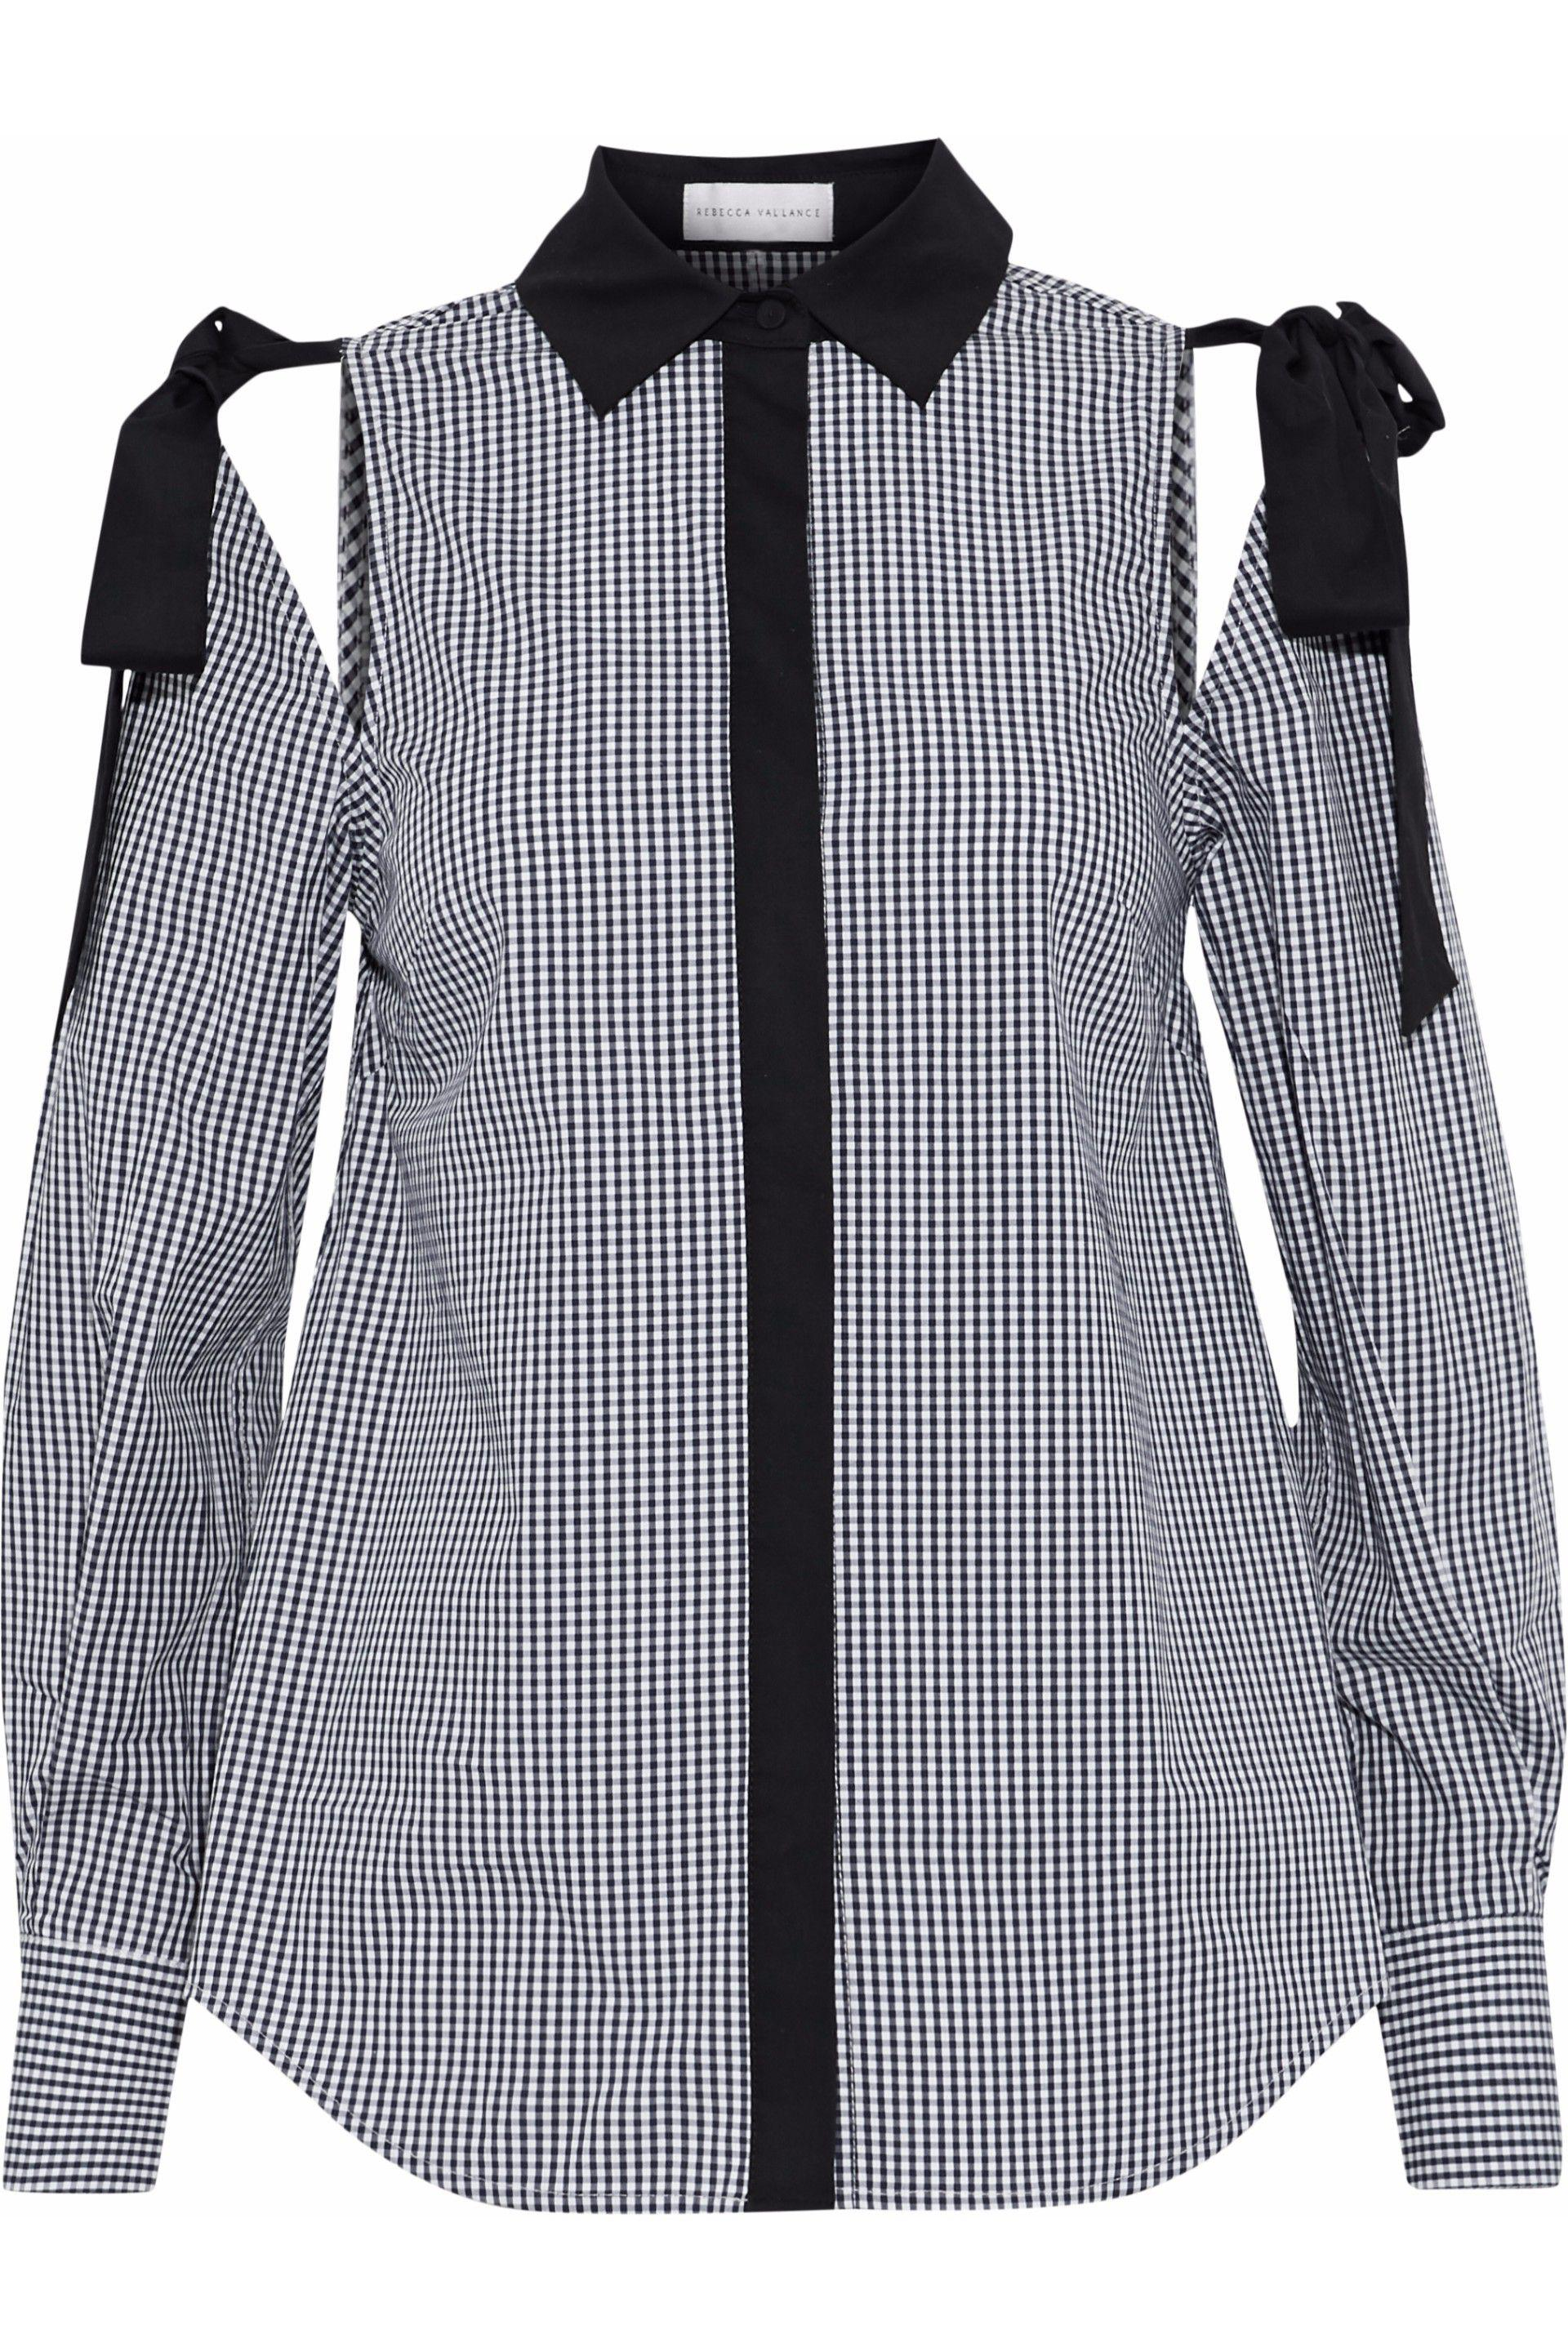 Rebecca Vallance Woman Cold-shoulder Gingham Cotton-poplin Shirt Black Size 8 Rebecca Vallance Collections Online New Styles Cheap Price Discounts Cheap Online Cheap Discount Authentic dcwdg7ouZ